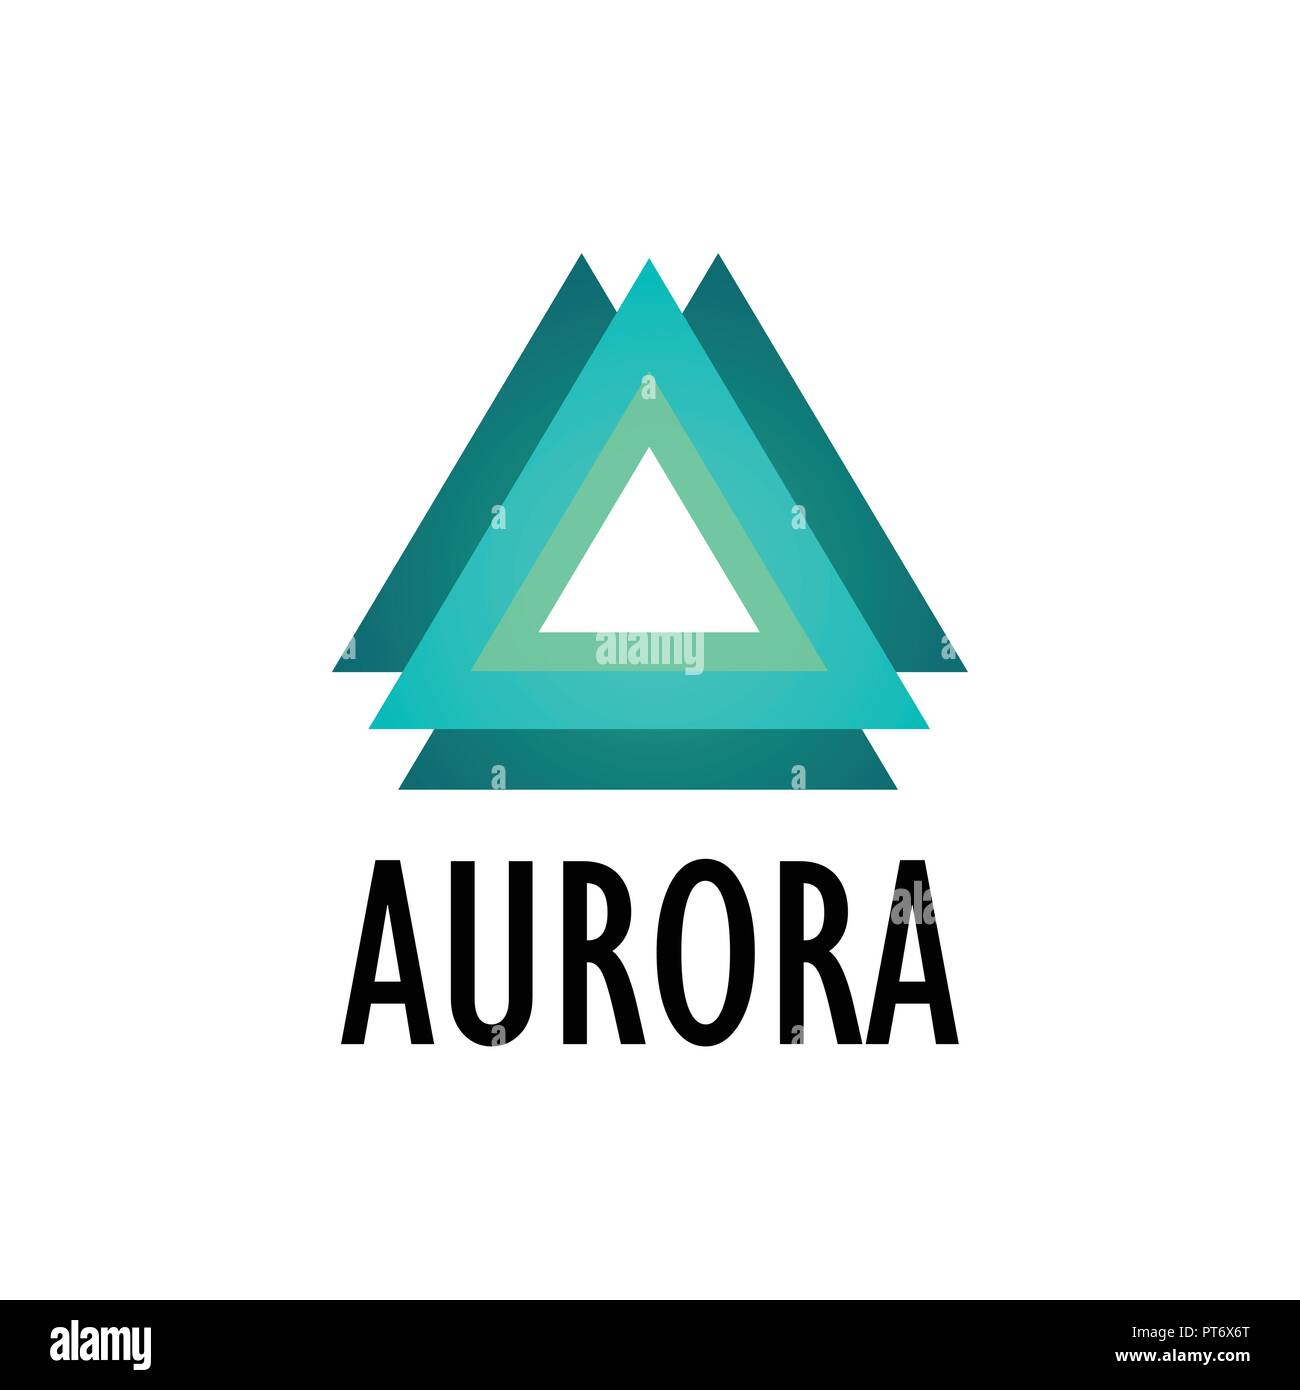 Logotype of Aurora, Northern Lights - Stock Image